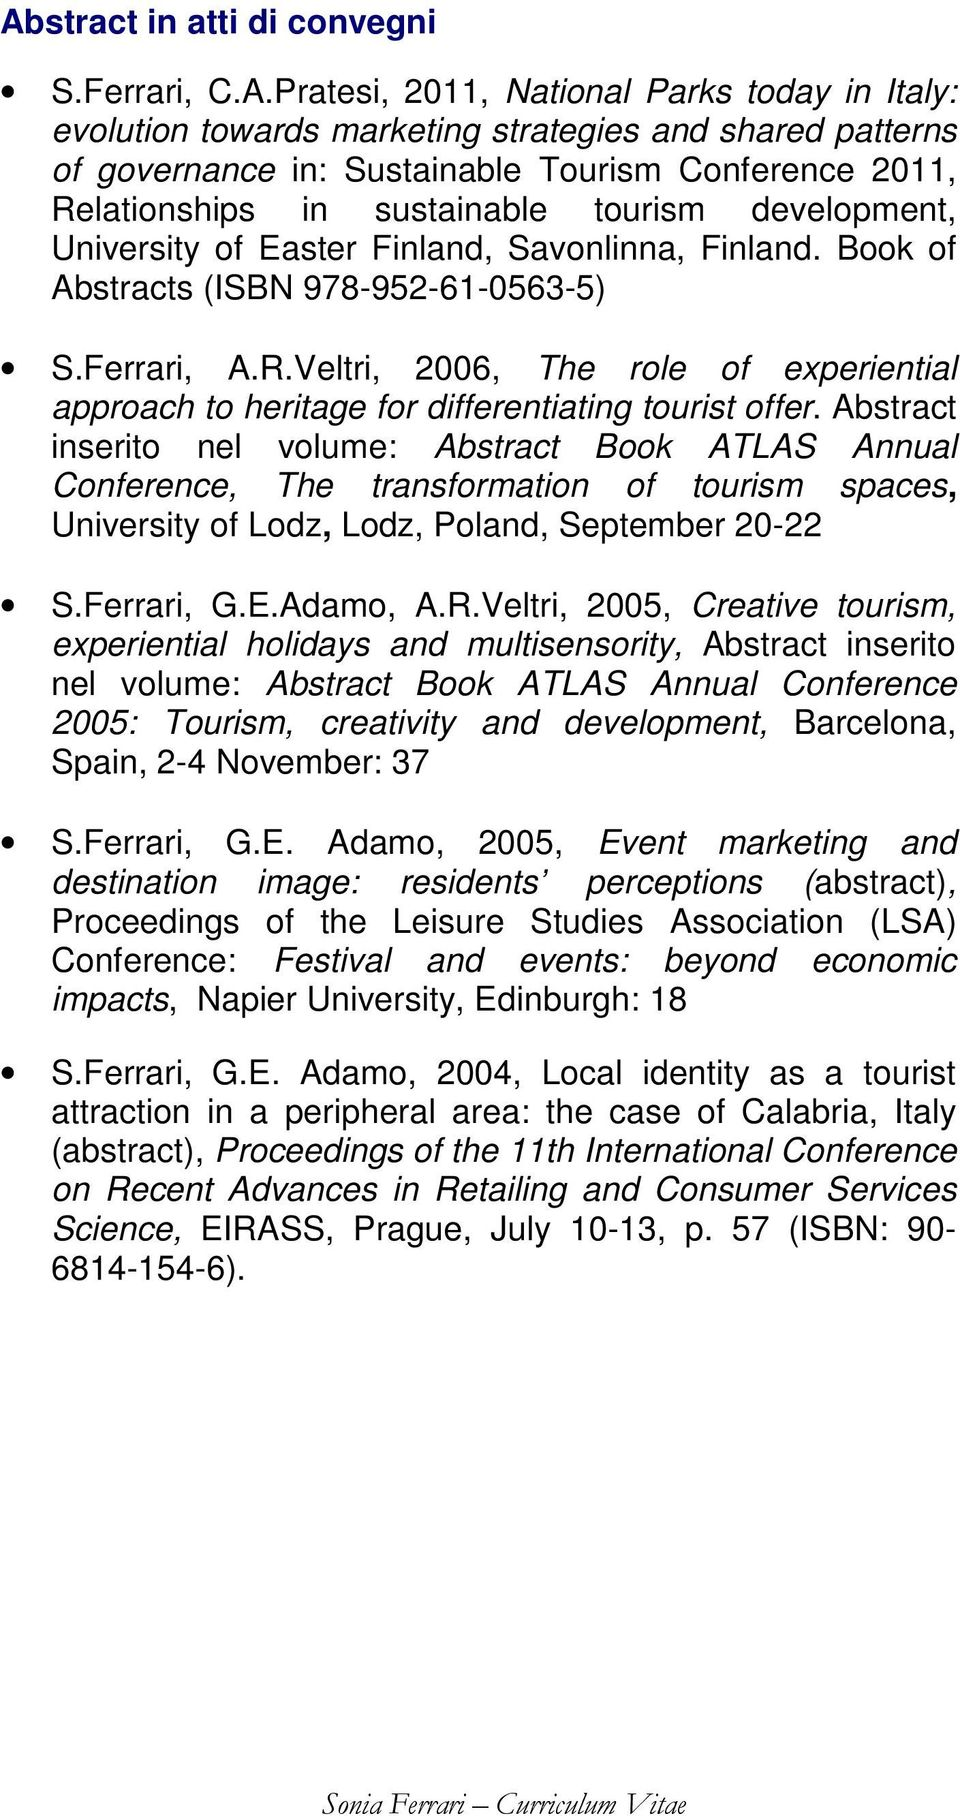 Abstract inserito nel volume: Abstract Book ATLAS Annual Conference, The transformation of tourism spaces, University of Lodz, Lodz, Poland, September 20-22 S.Ferrari, G.E.Adamo, A.R.